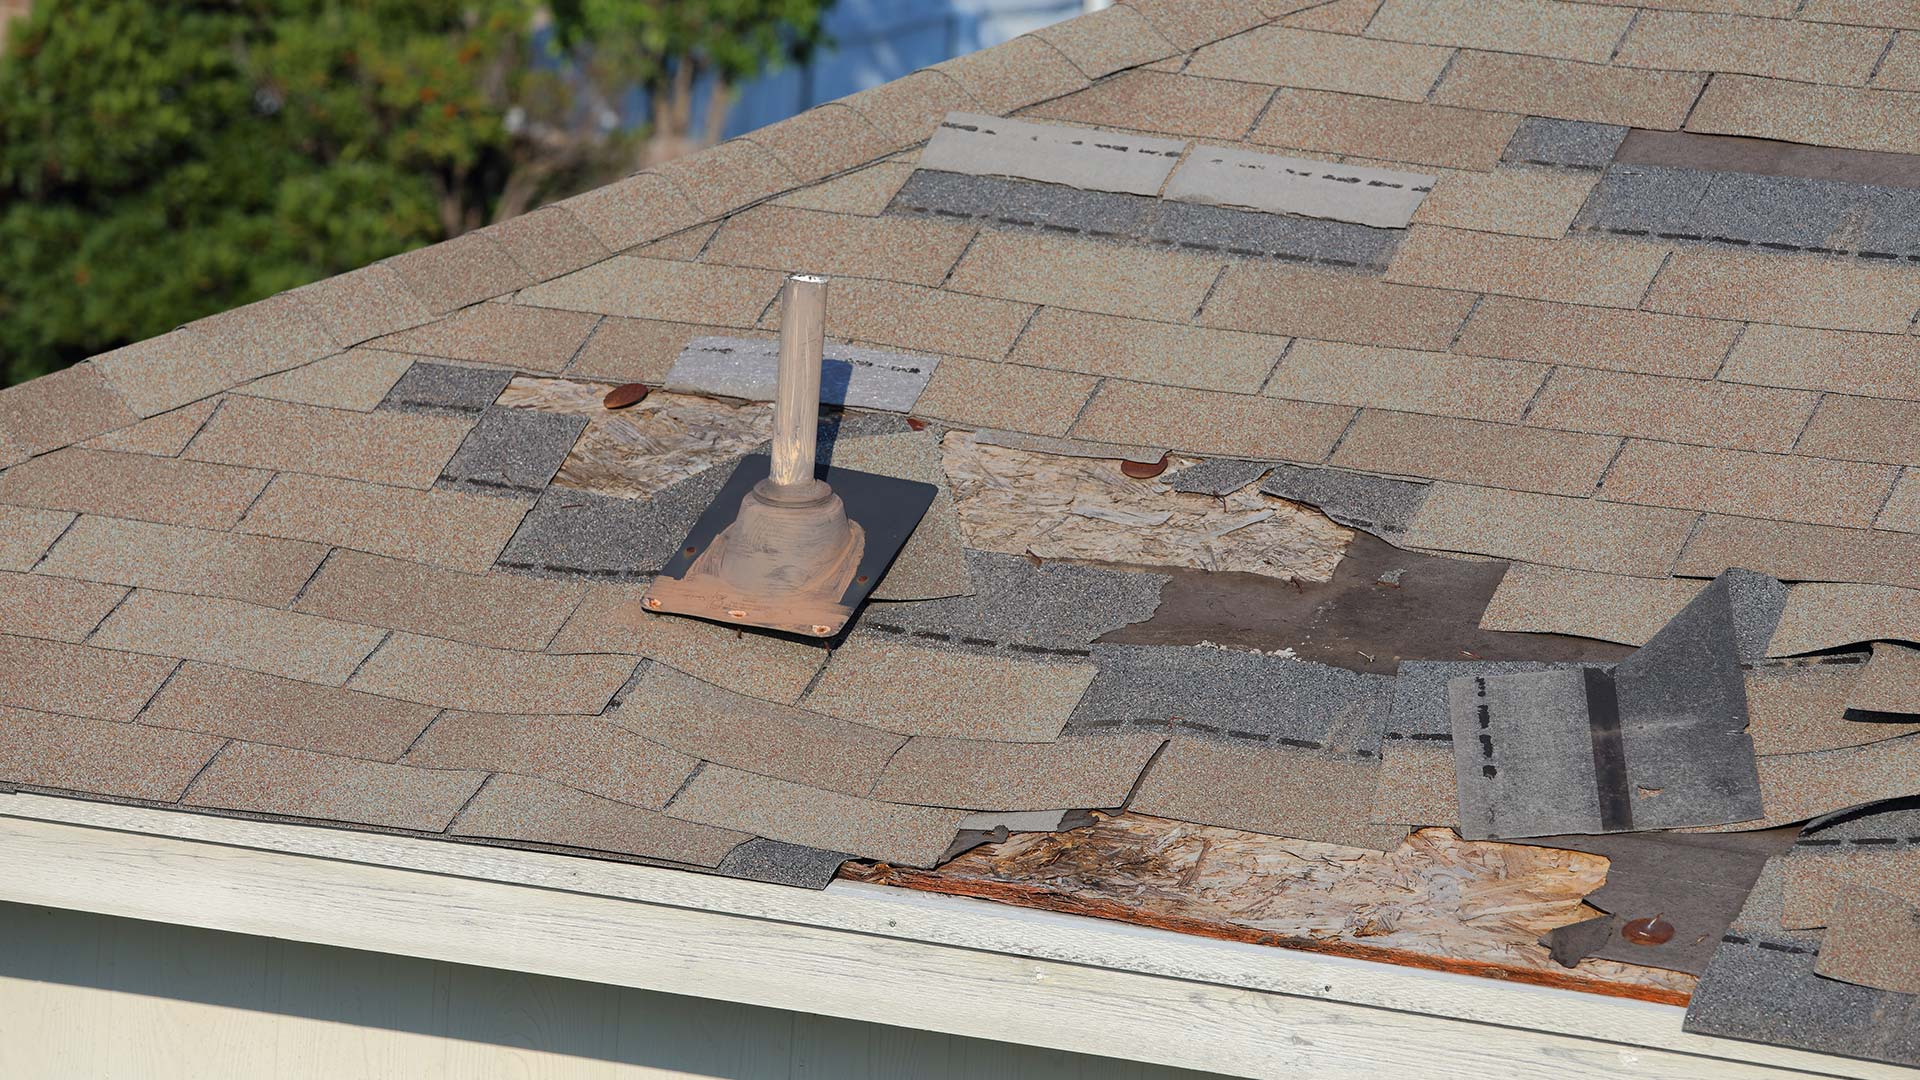 What Are Some Indicators of a Roof Leak?